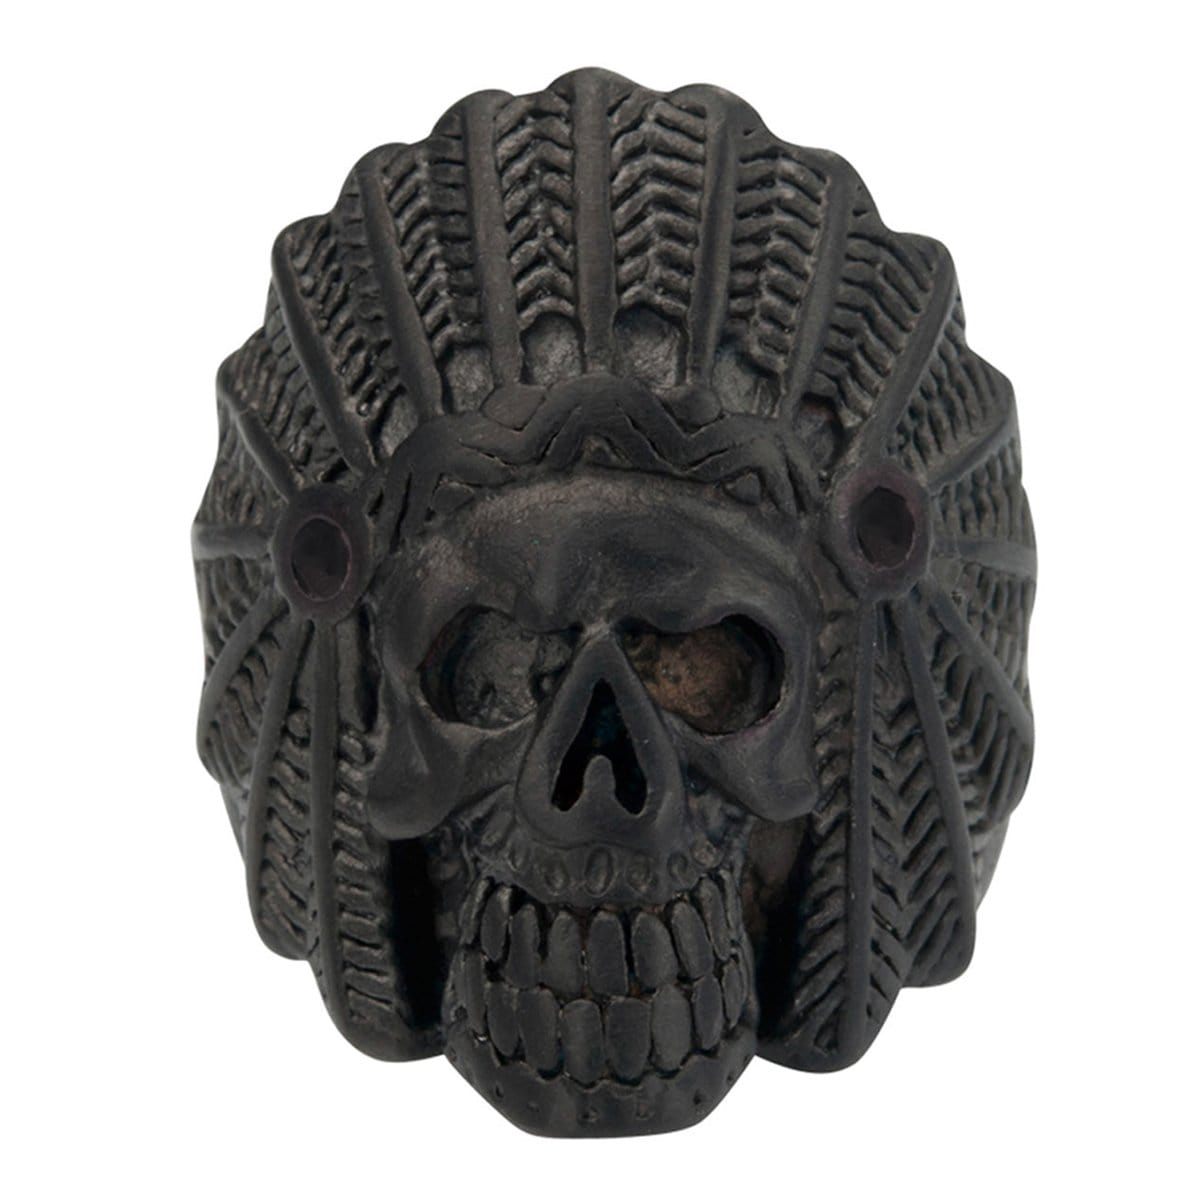 Black Stainless Steel Native American Tribal Chief Skull Ring - Inox Jewelry India